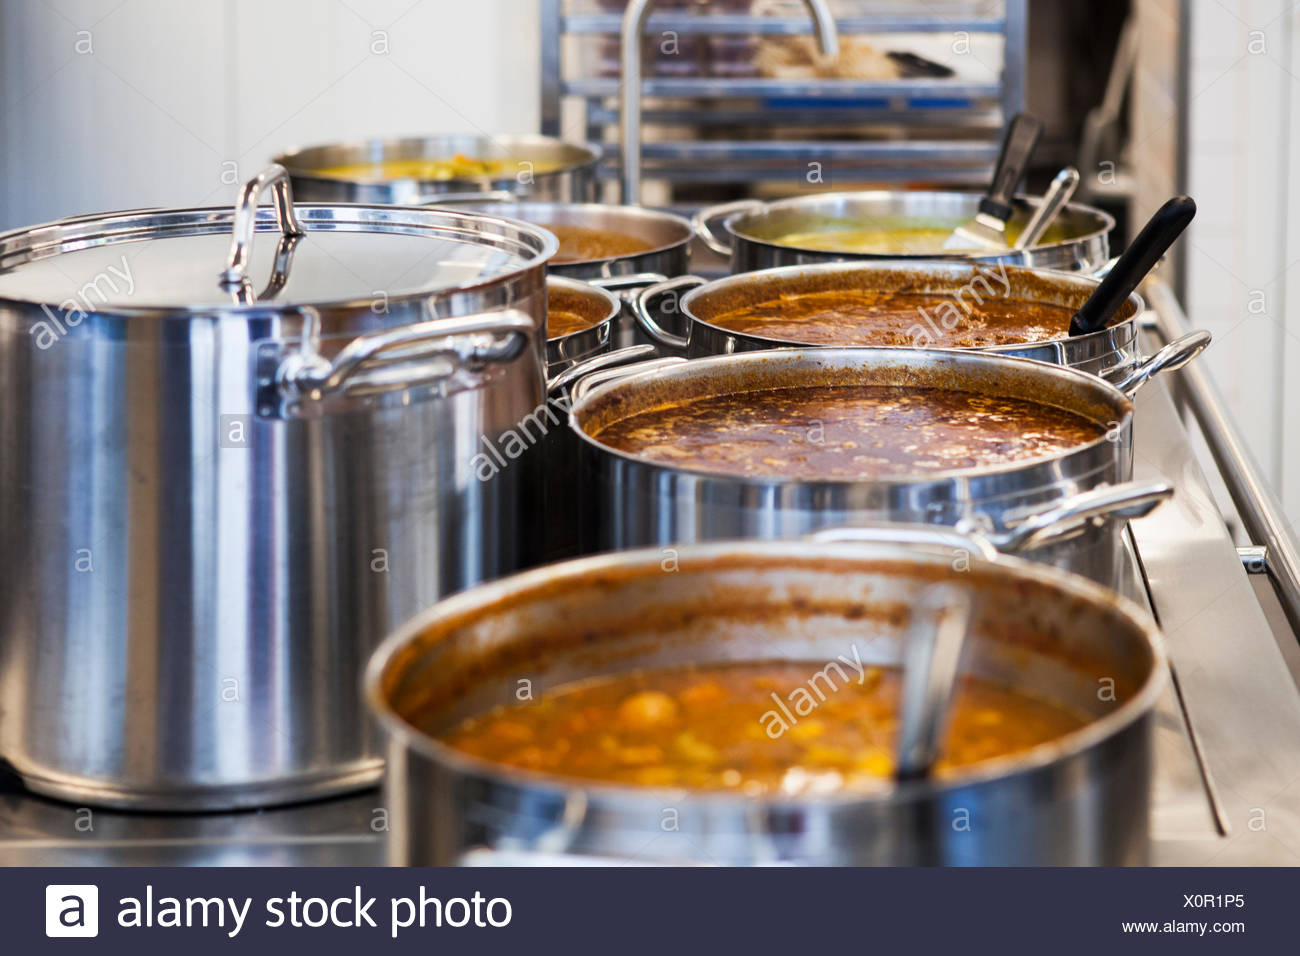 Food in saucepans on table at commercial kitchen - Stock Image